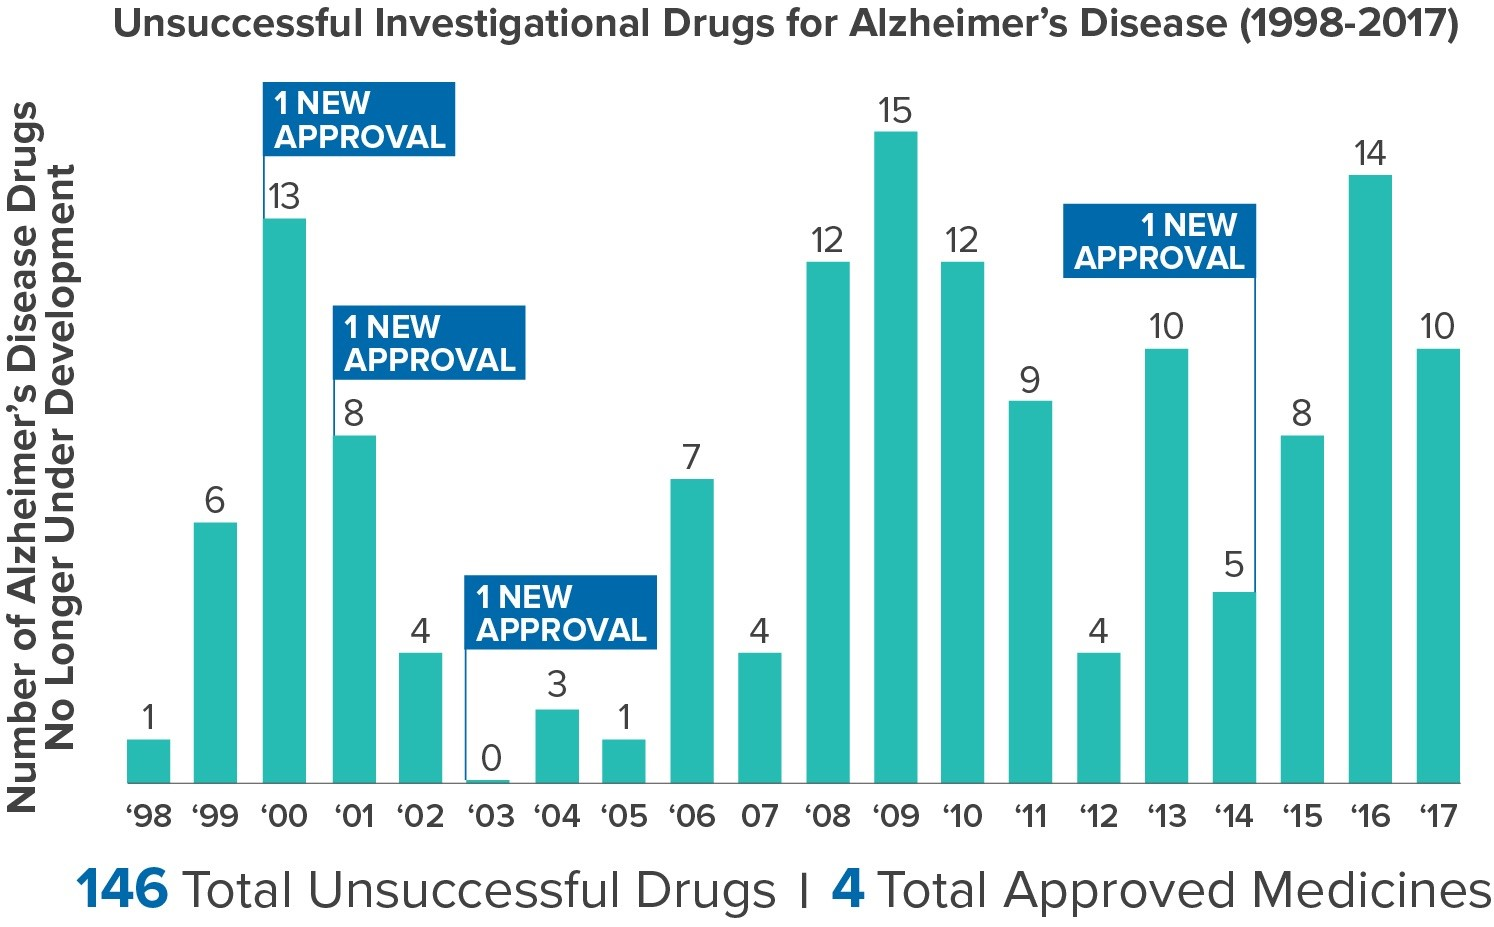 Catalyst Alzheimer's Graphic